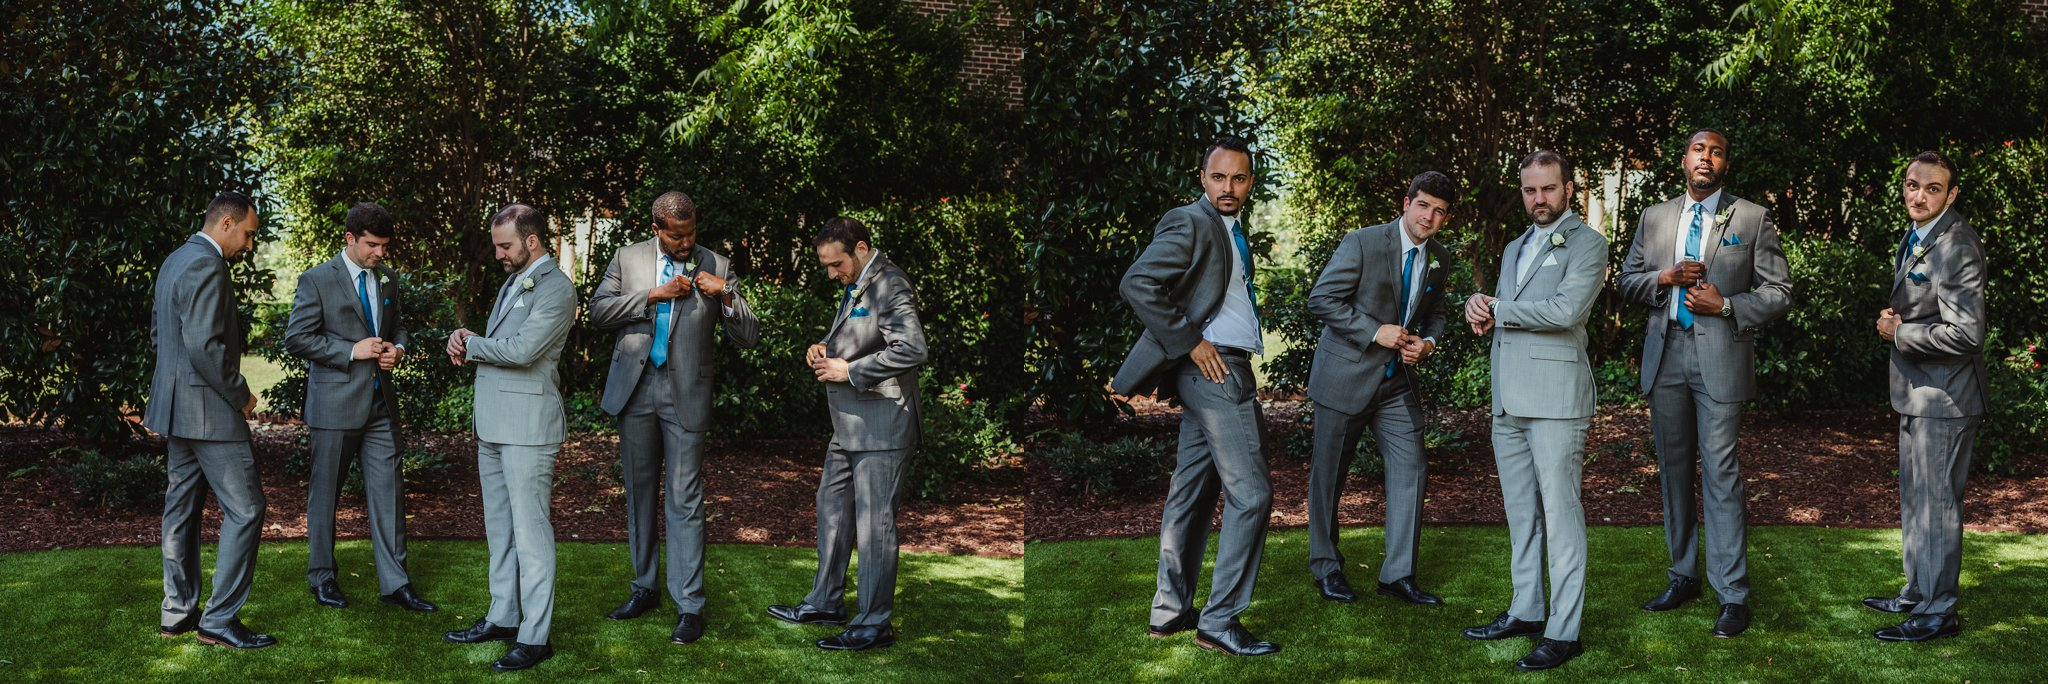 """The groom and his groomsmen playing """"Anchorman"""" before the wedding at the Merrimon Wynne in Raleigh, photos by Rose Trail Images."""